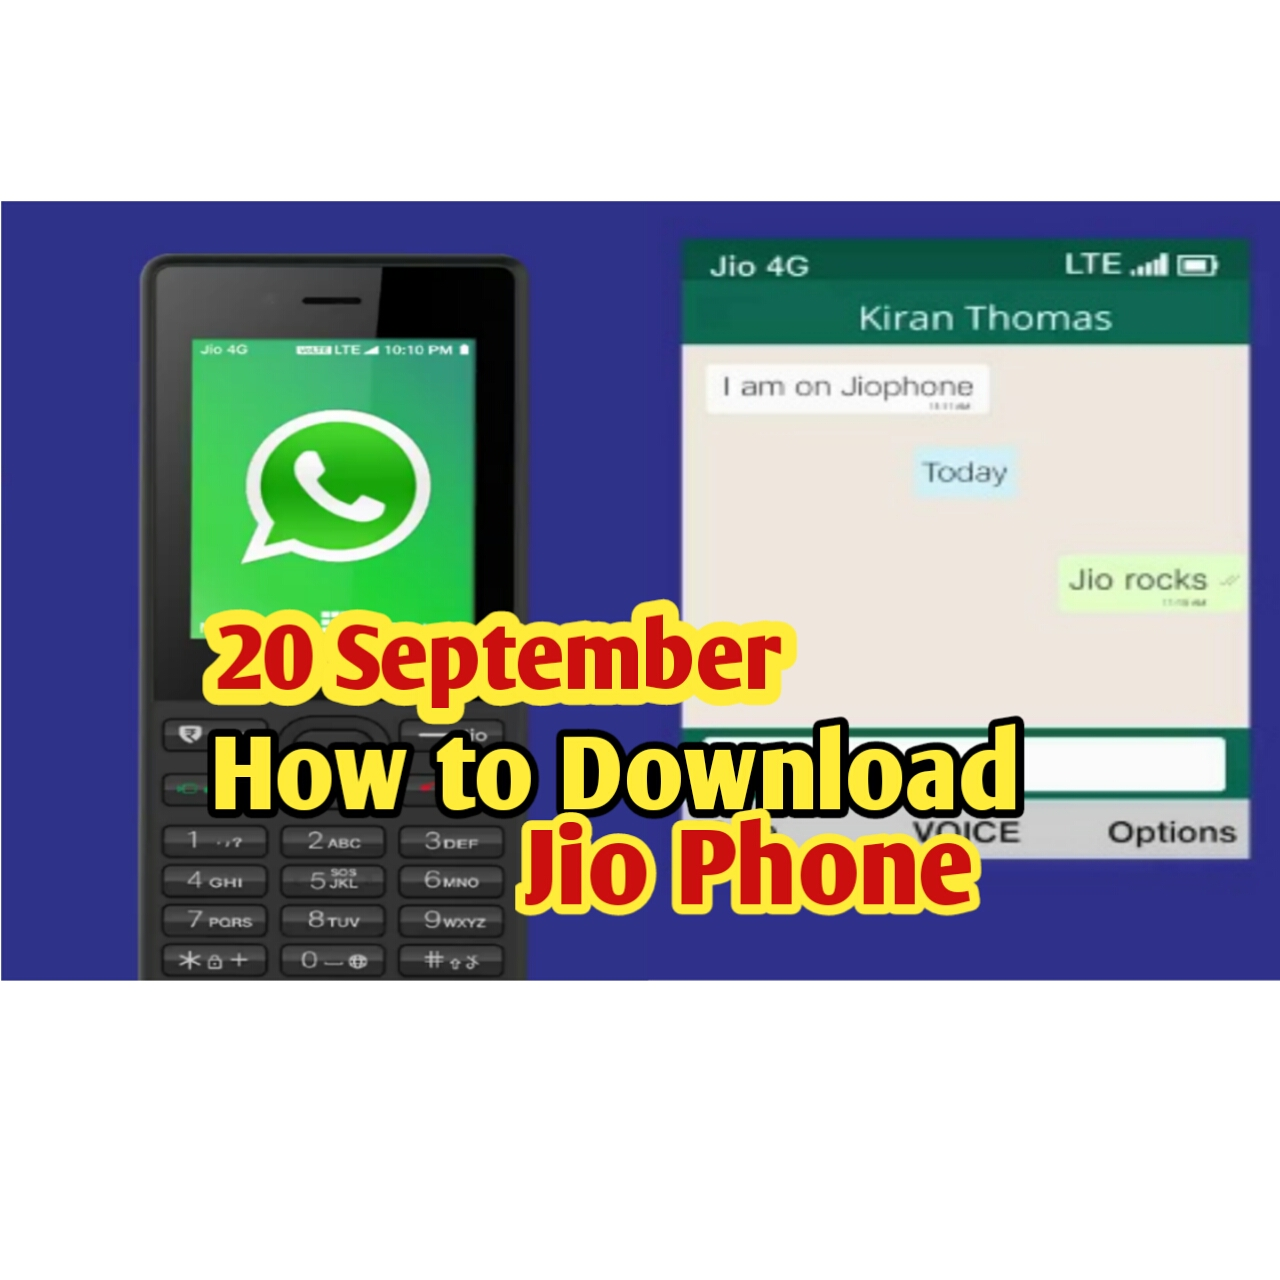 jio video calling apps download